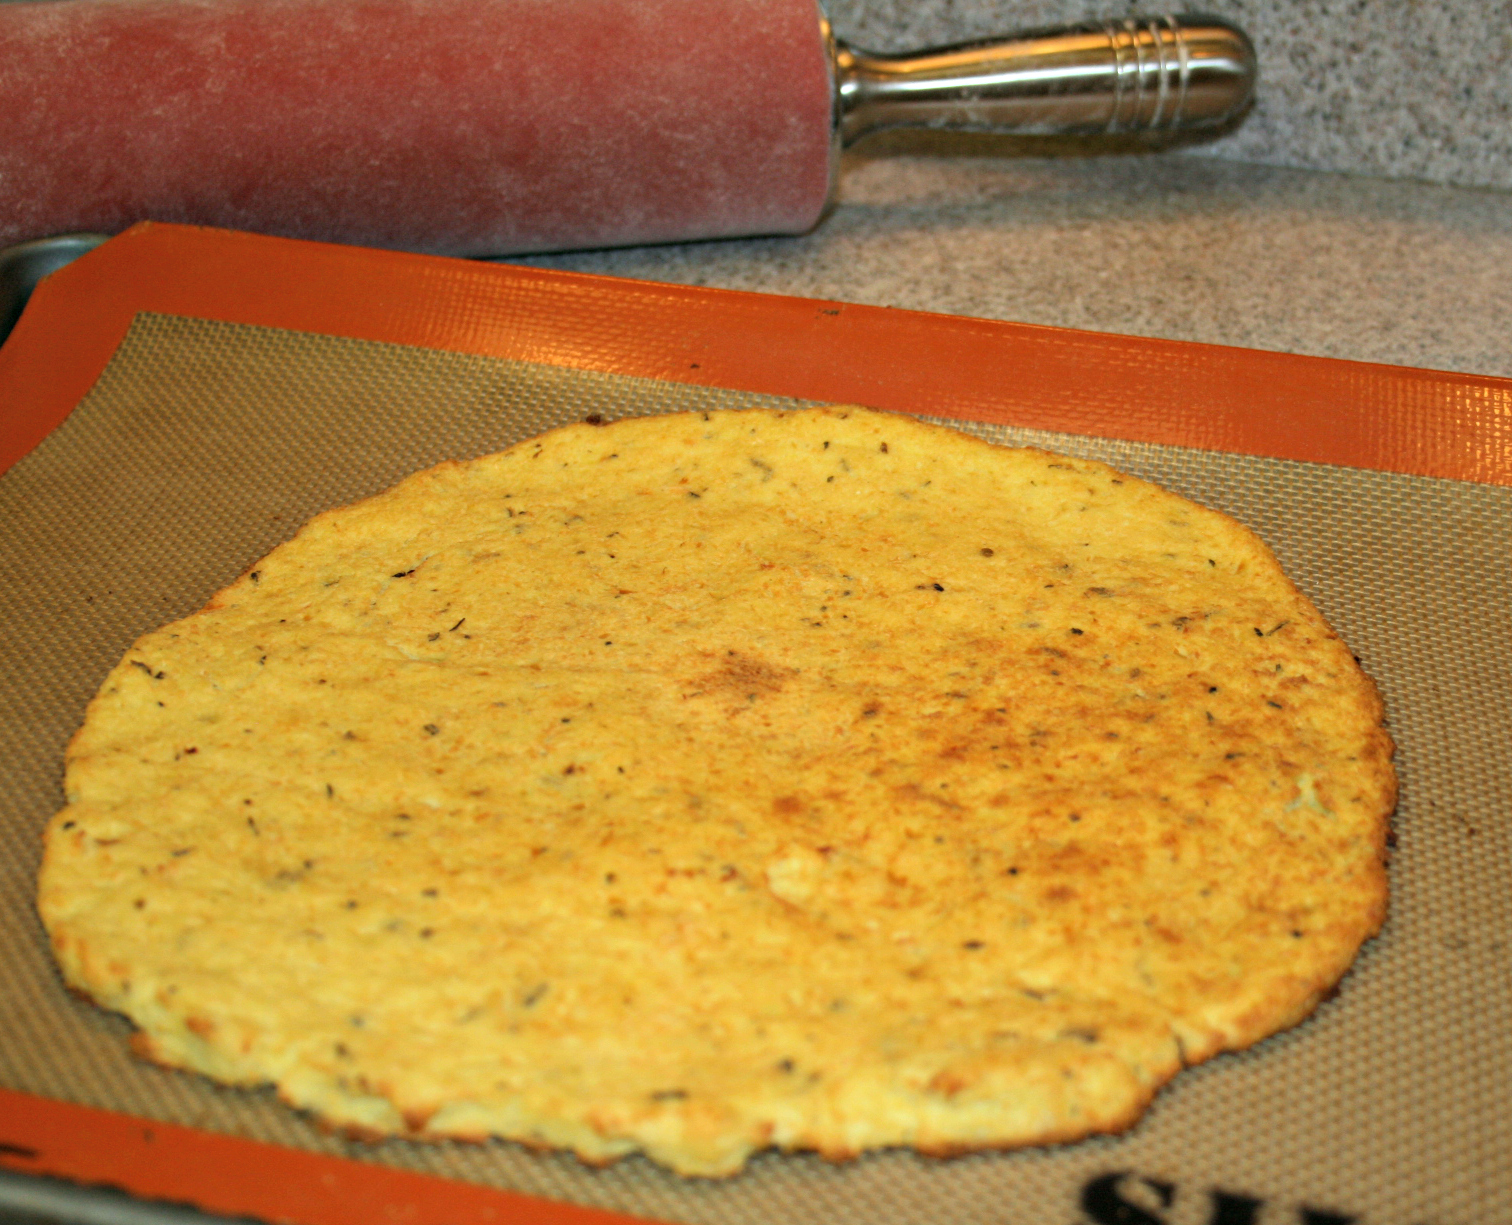 CauliflowerCrust